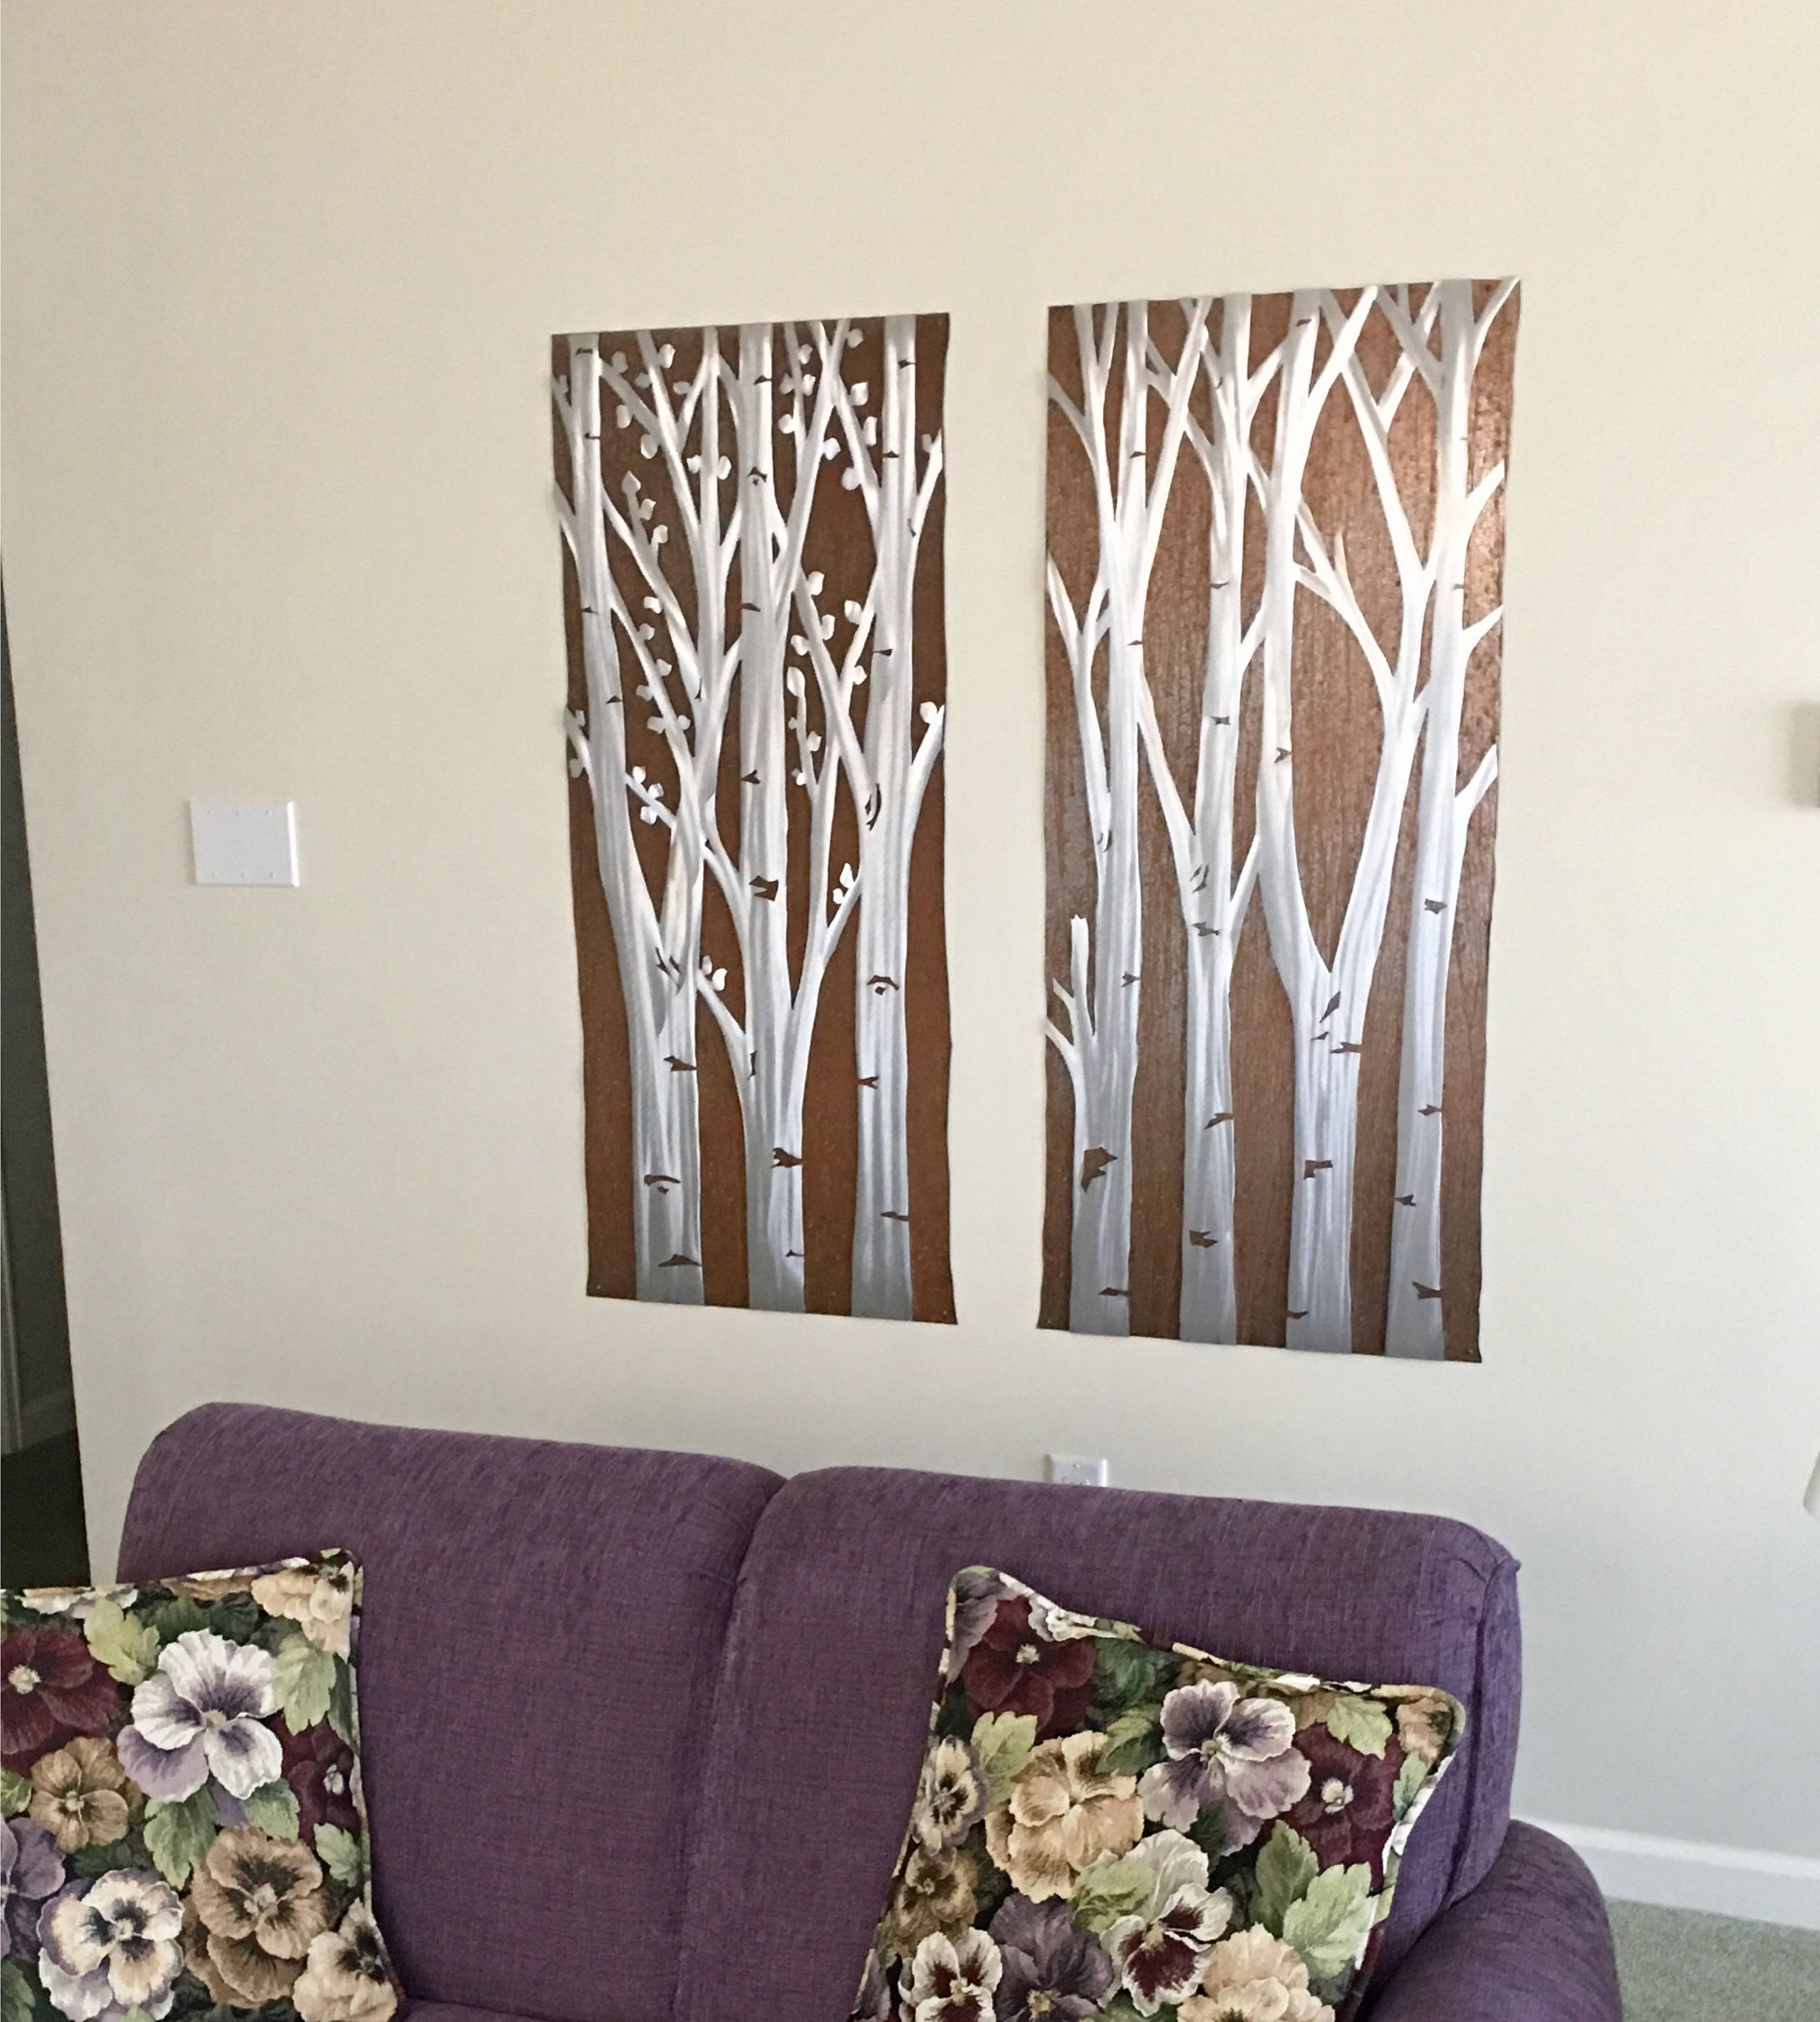 Aspen Tree Wall Art Throughout Trendy Aspen Trees. Large Metal Wall Art (View 6 of 15)